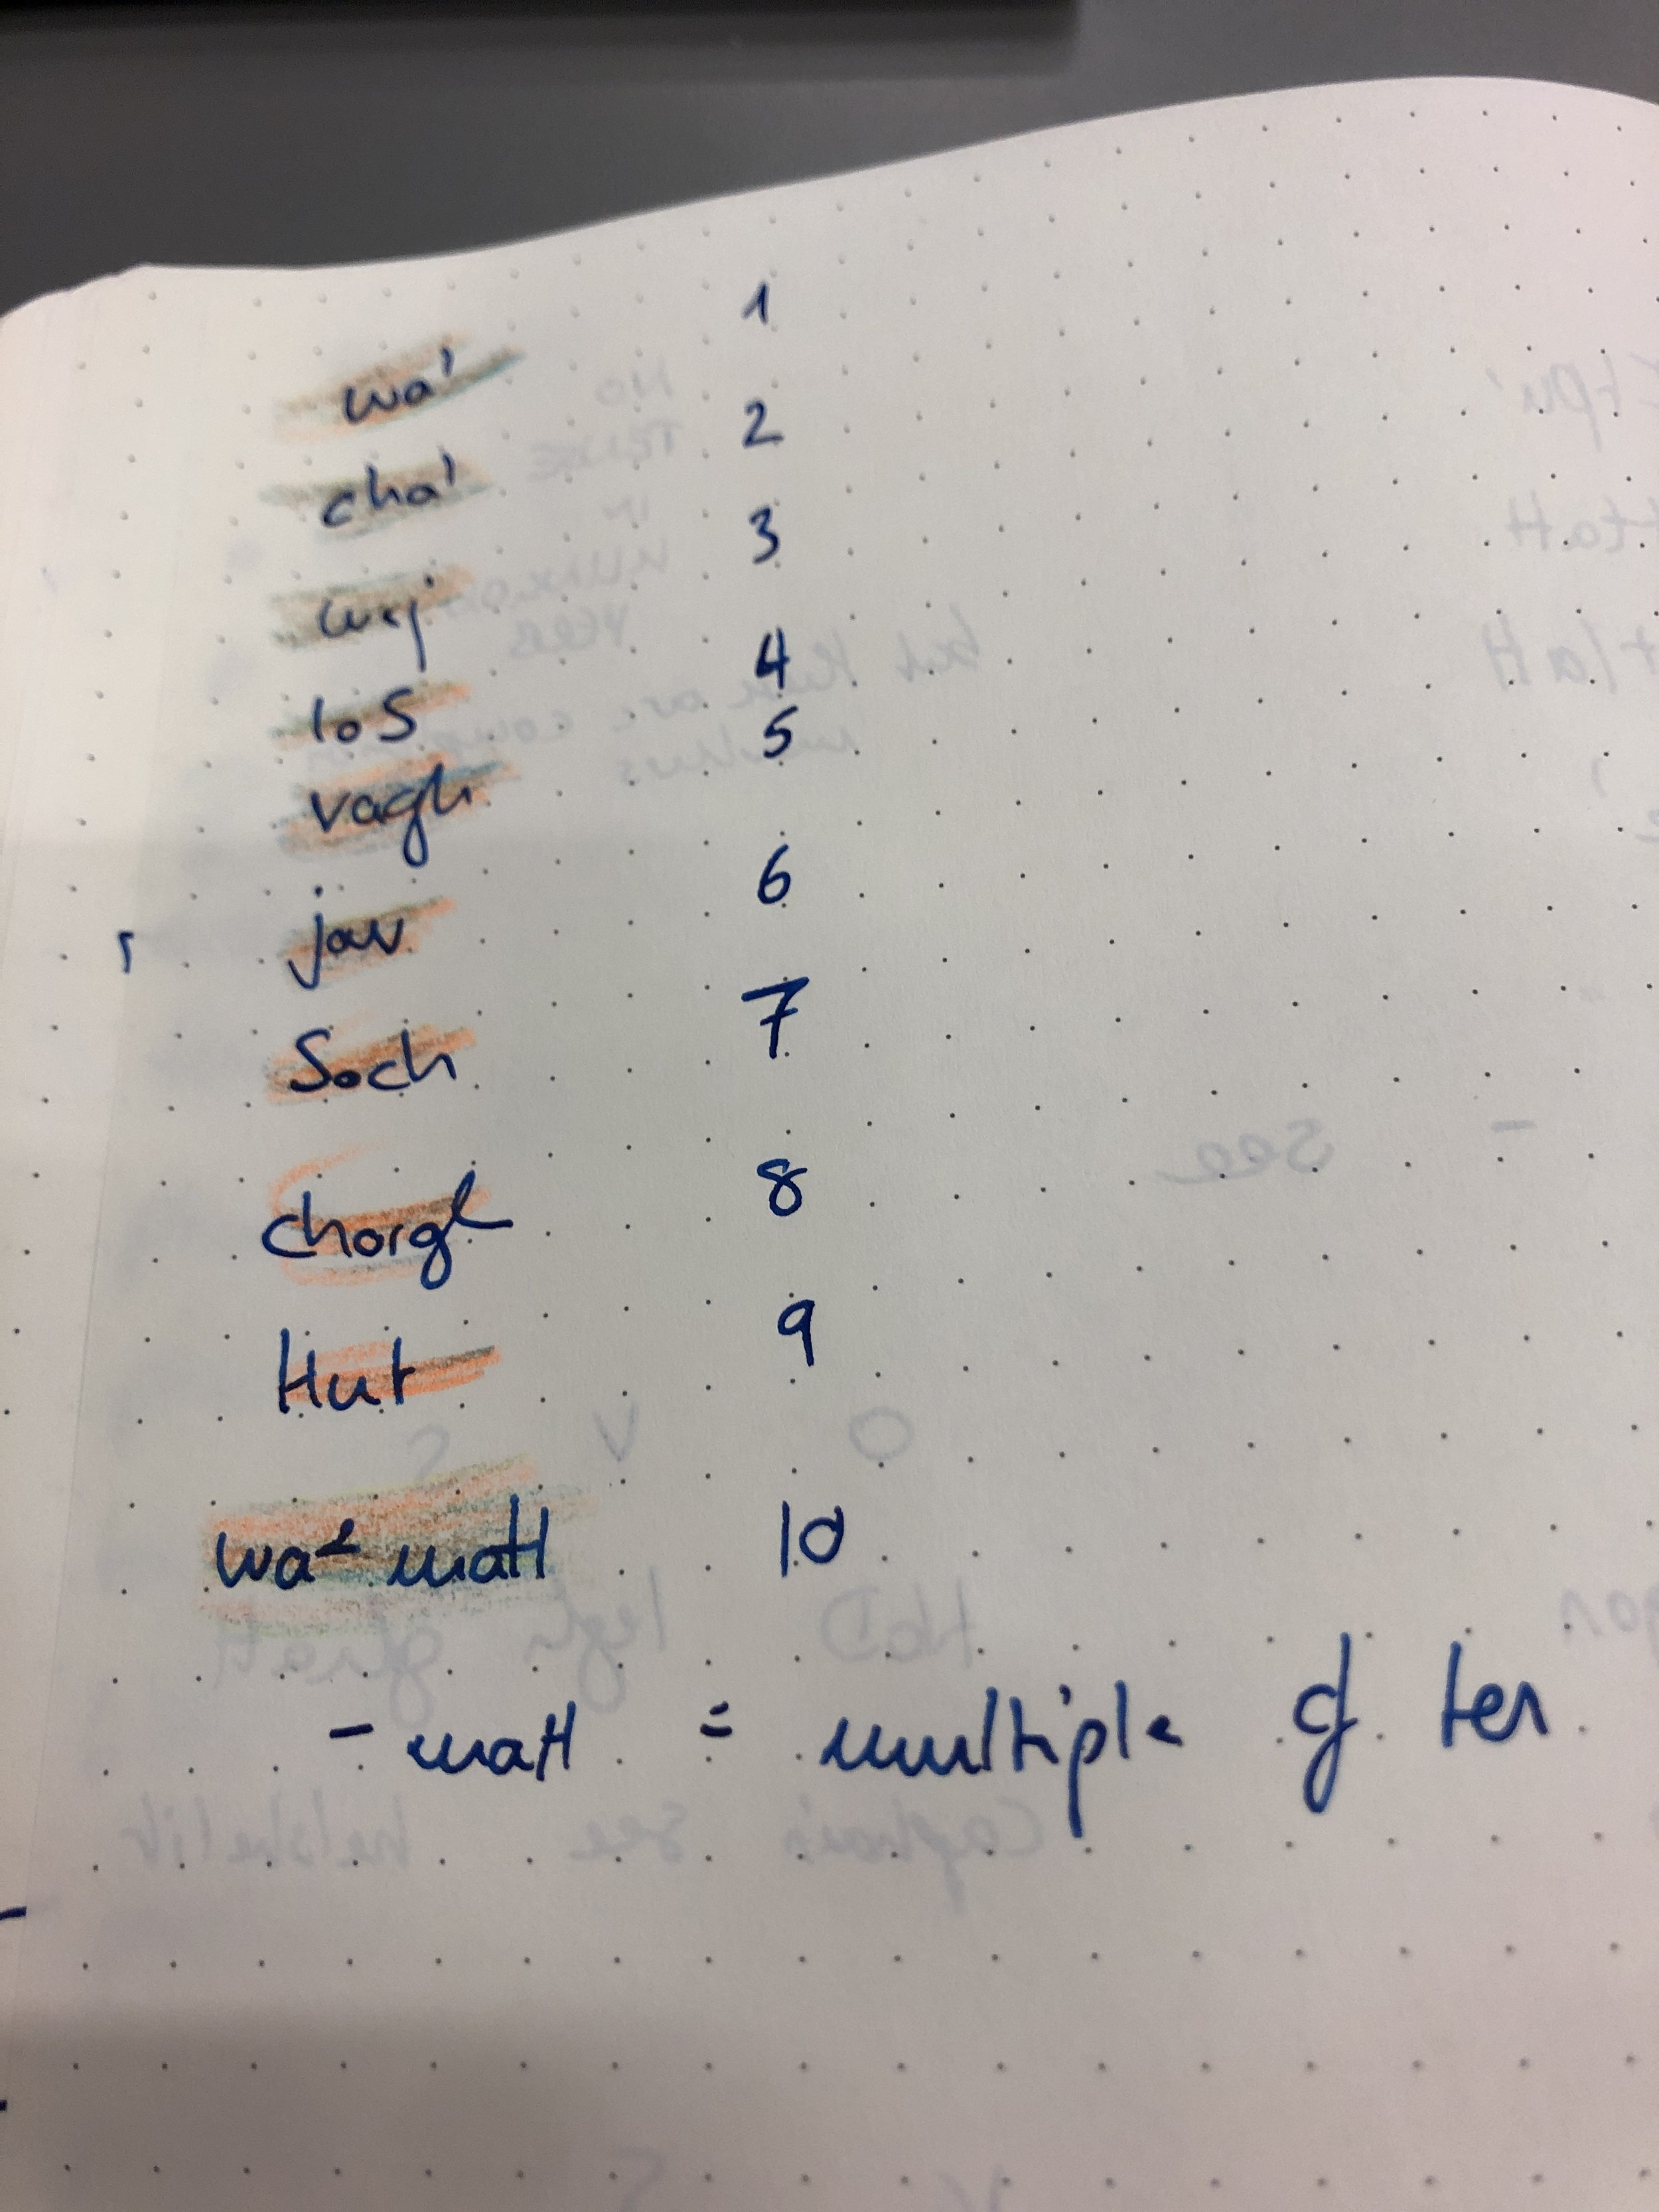 Counting in Klingon